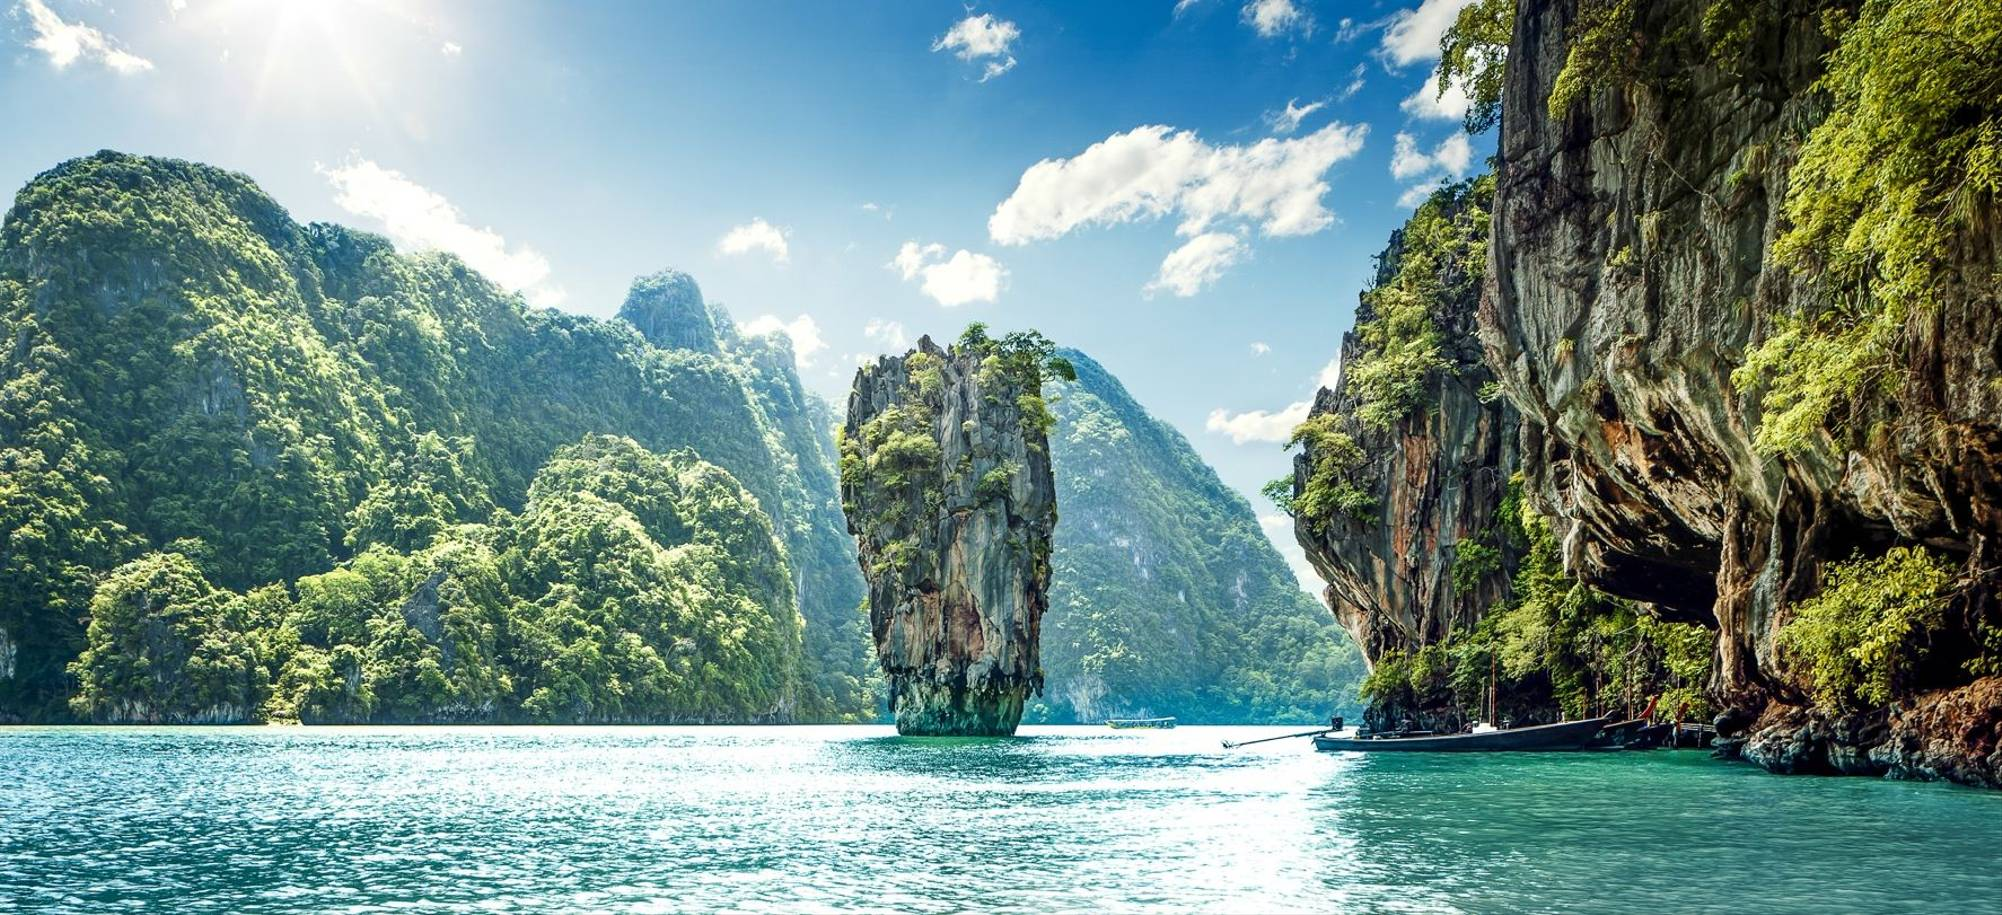 Phang Nga National Park, Phuket